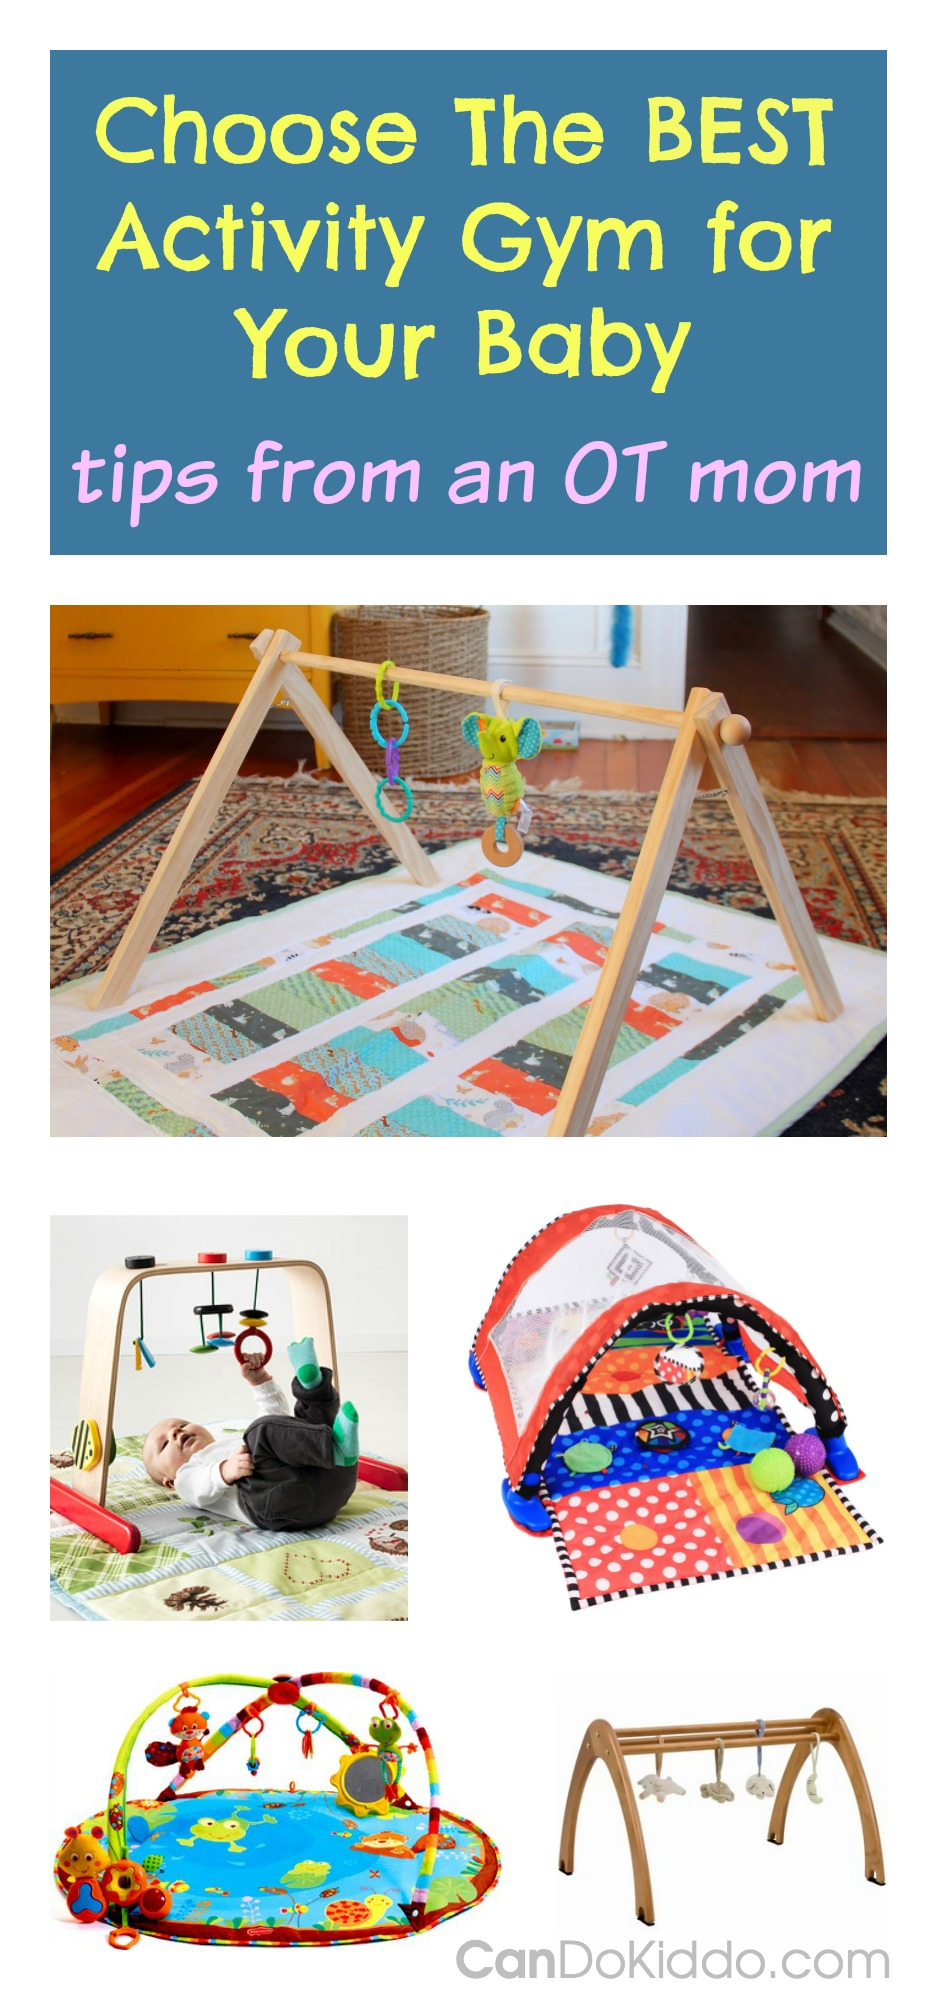 Choosing the Best Activity Gyms for Baby's development. CanDo Kiddo